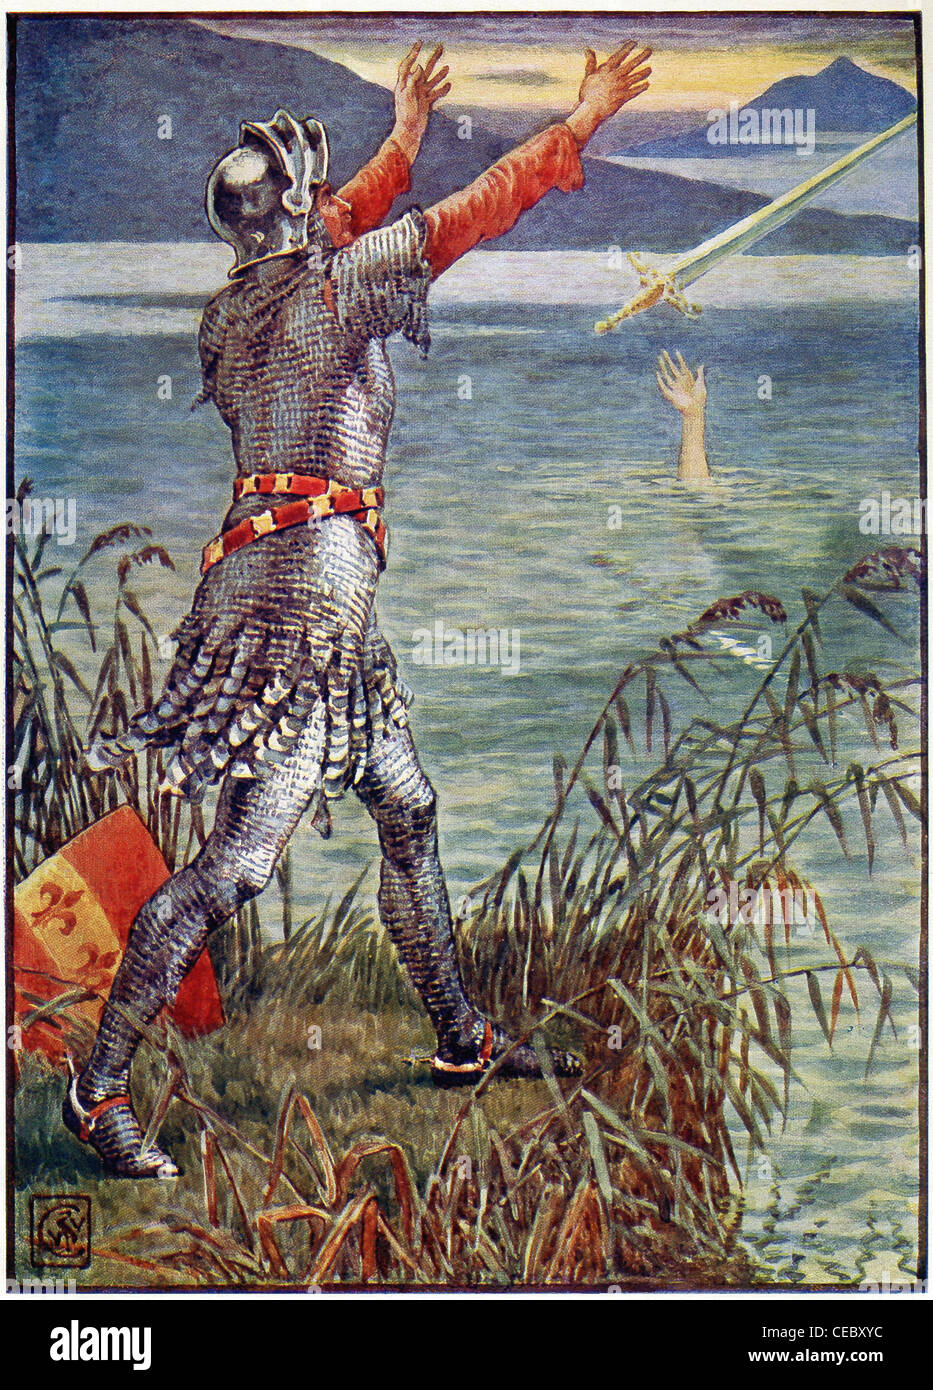 Sir Bedivere gives back the sword Excalibur, that King Arthur had used but now he is dead, to the Lady of the Lake. - Stock Image